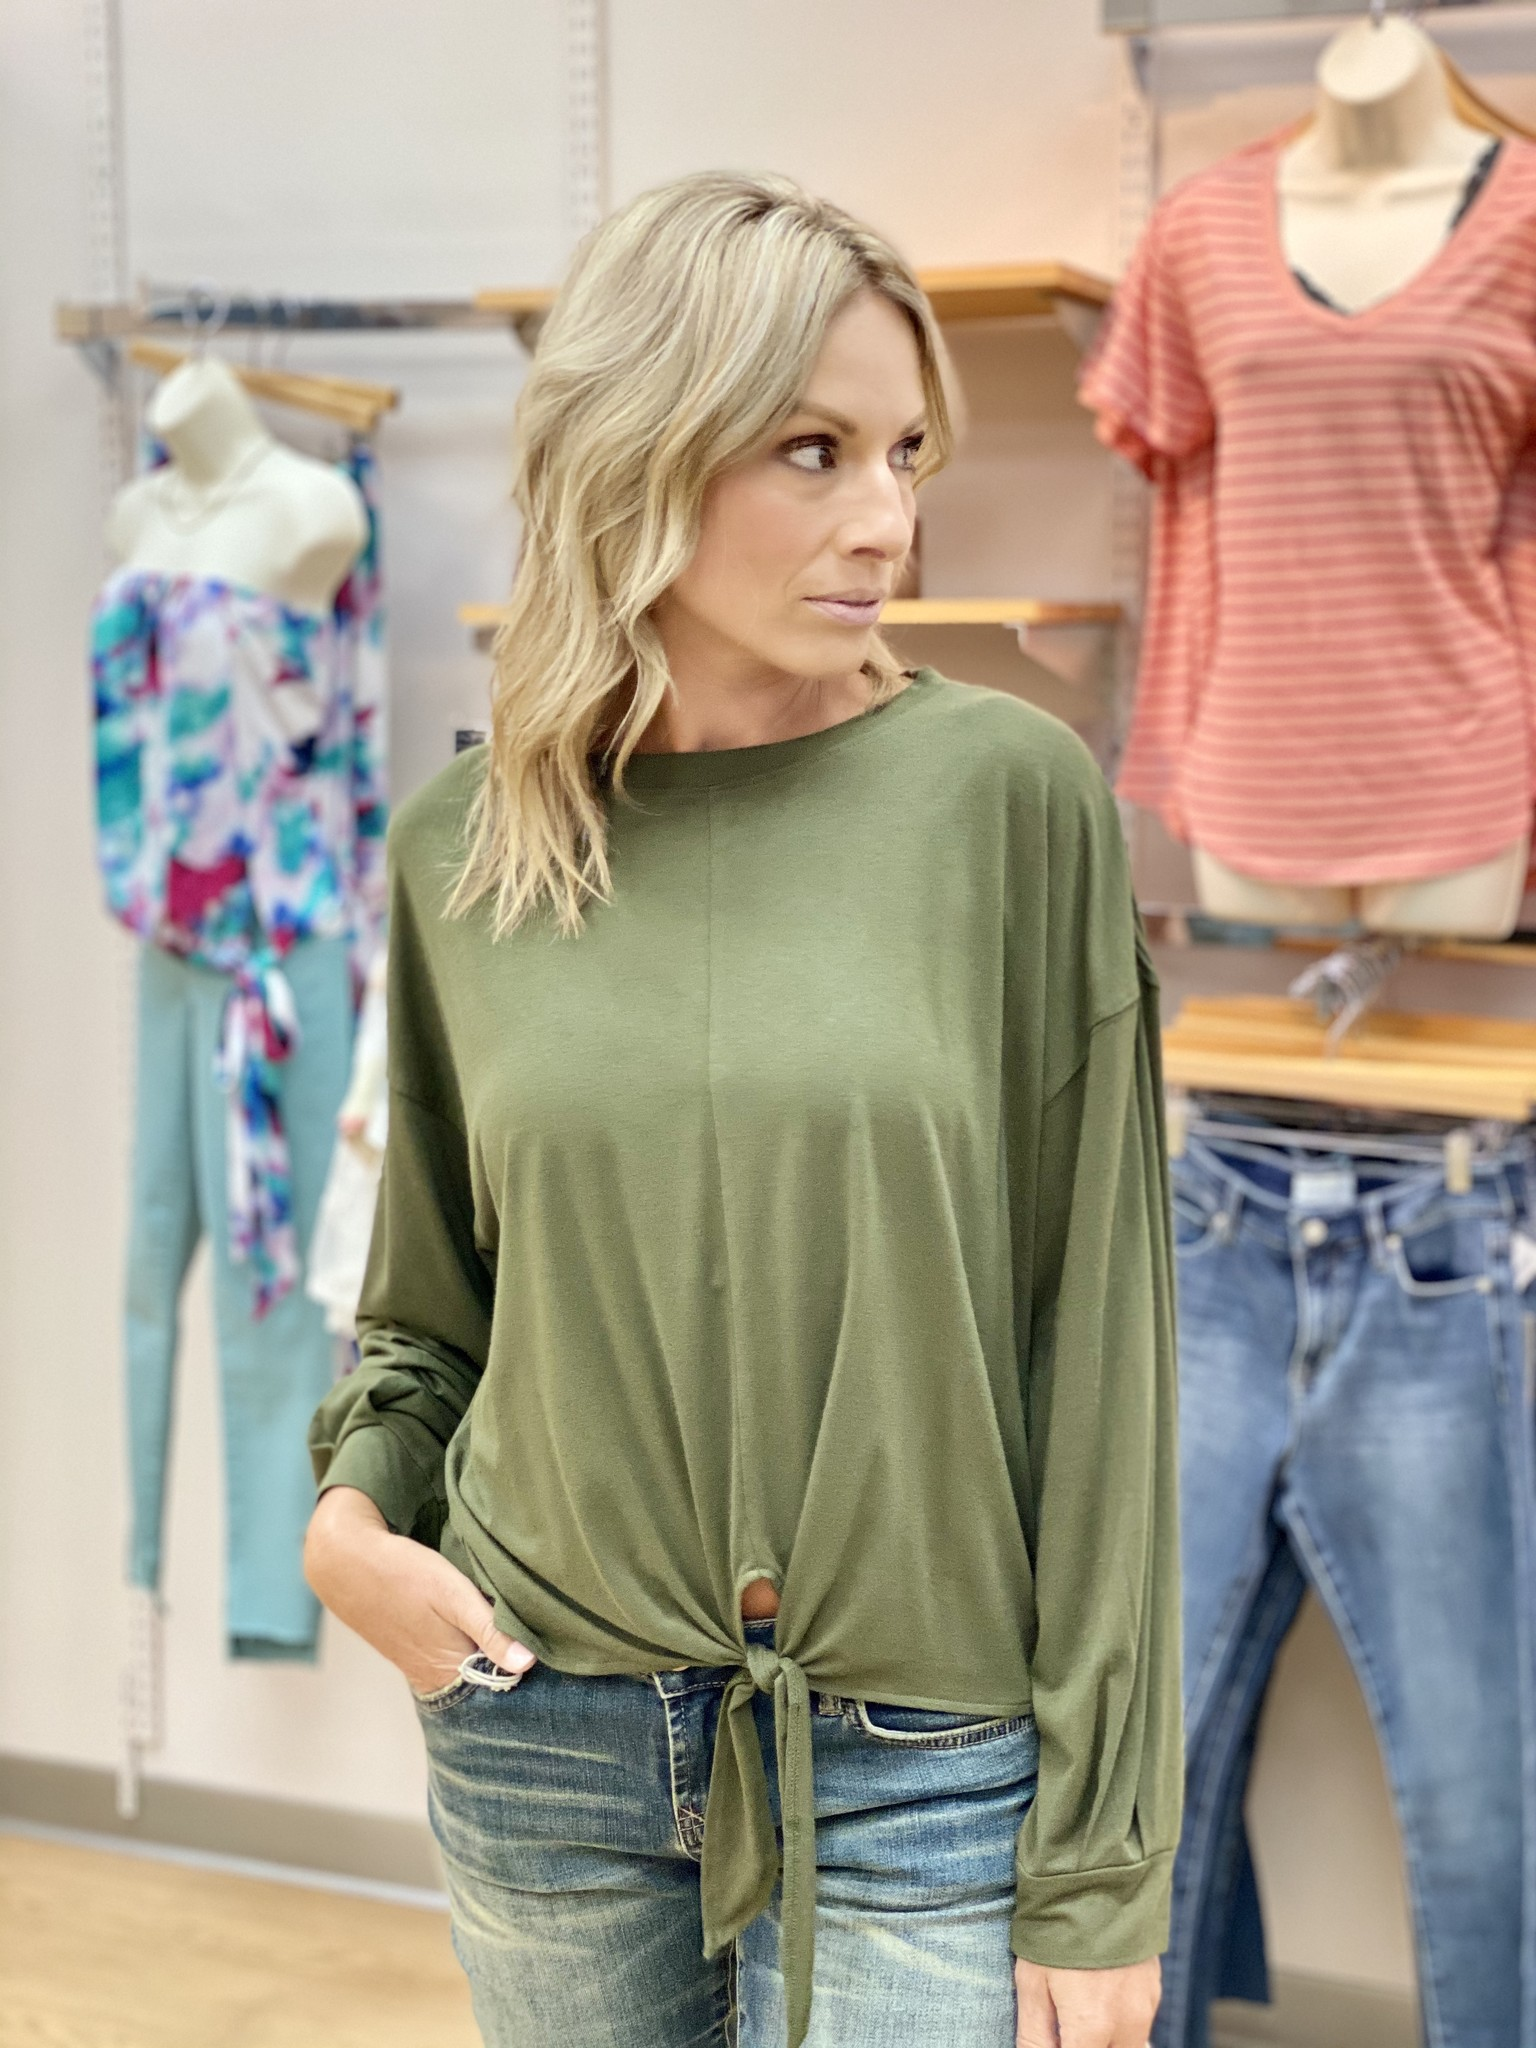 Survival Jackie O Cruise Tee in Army